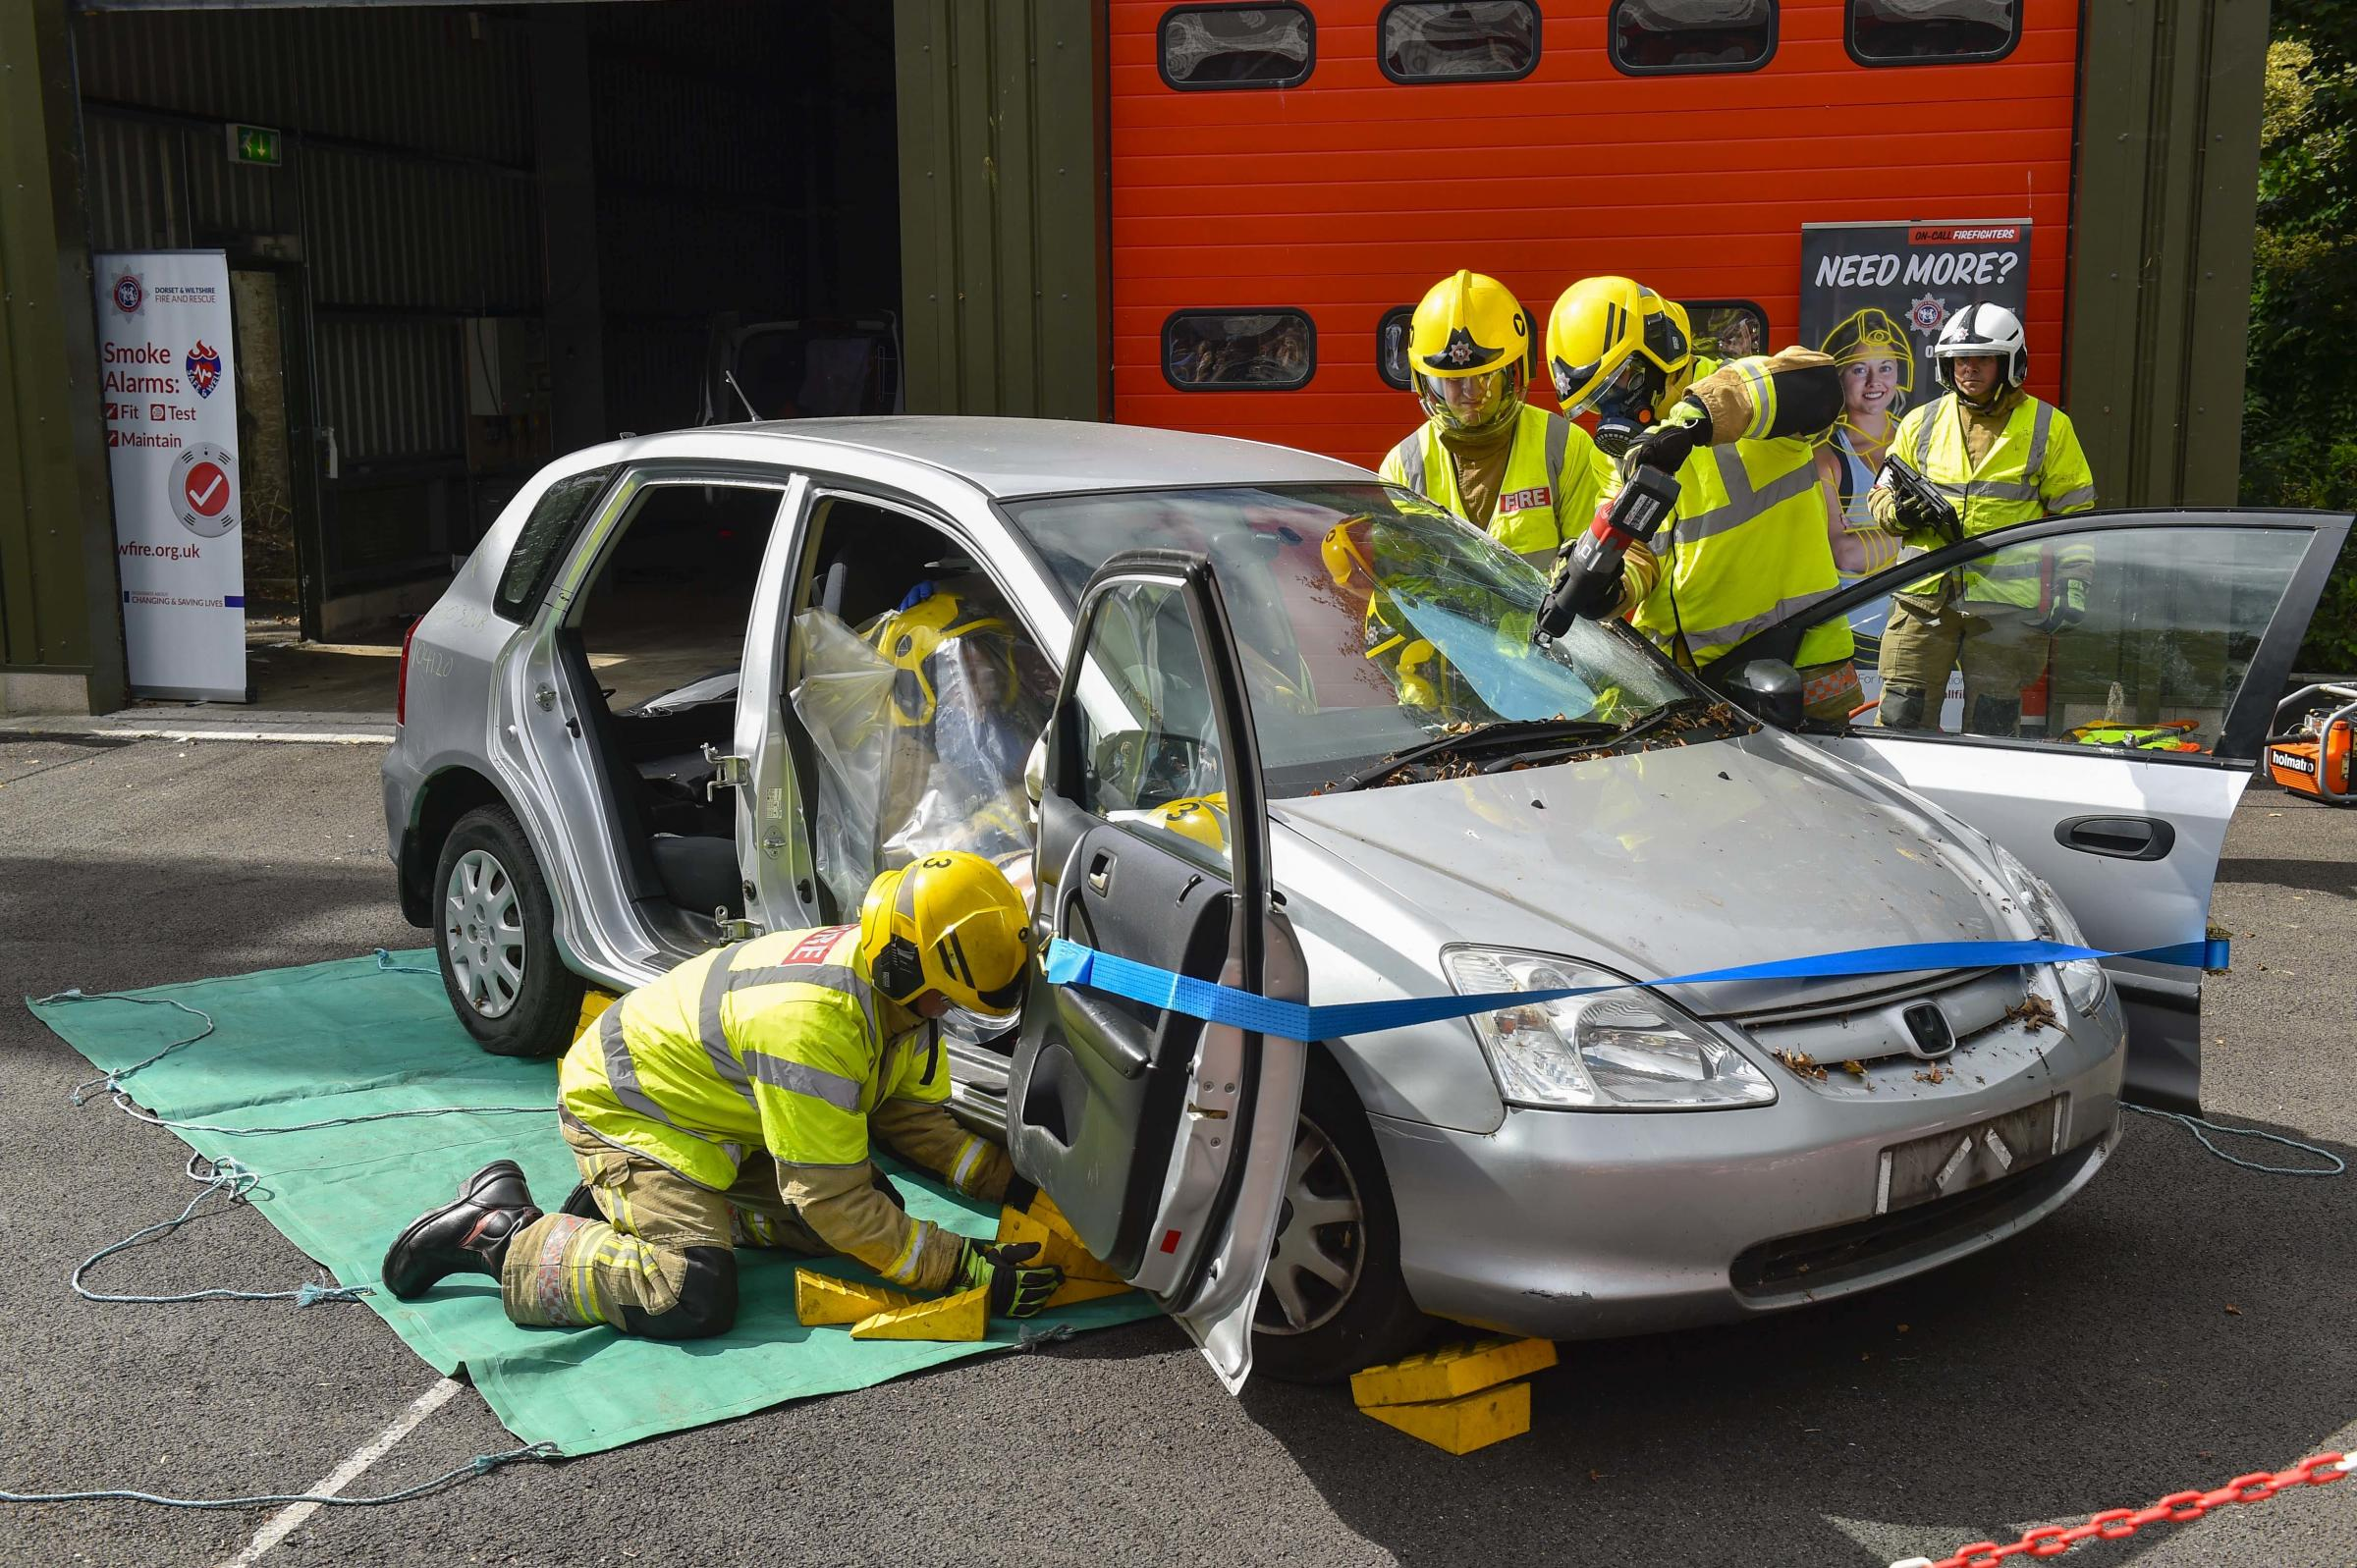 Bridport Fire Station to host 'have a go' recruitment evening